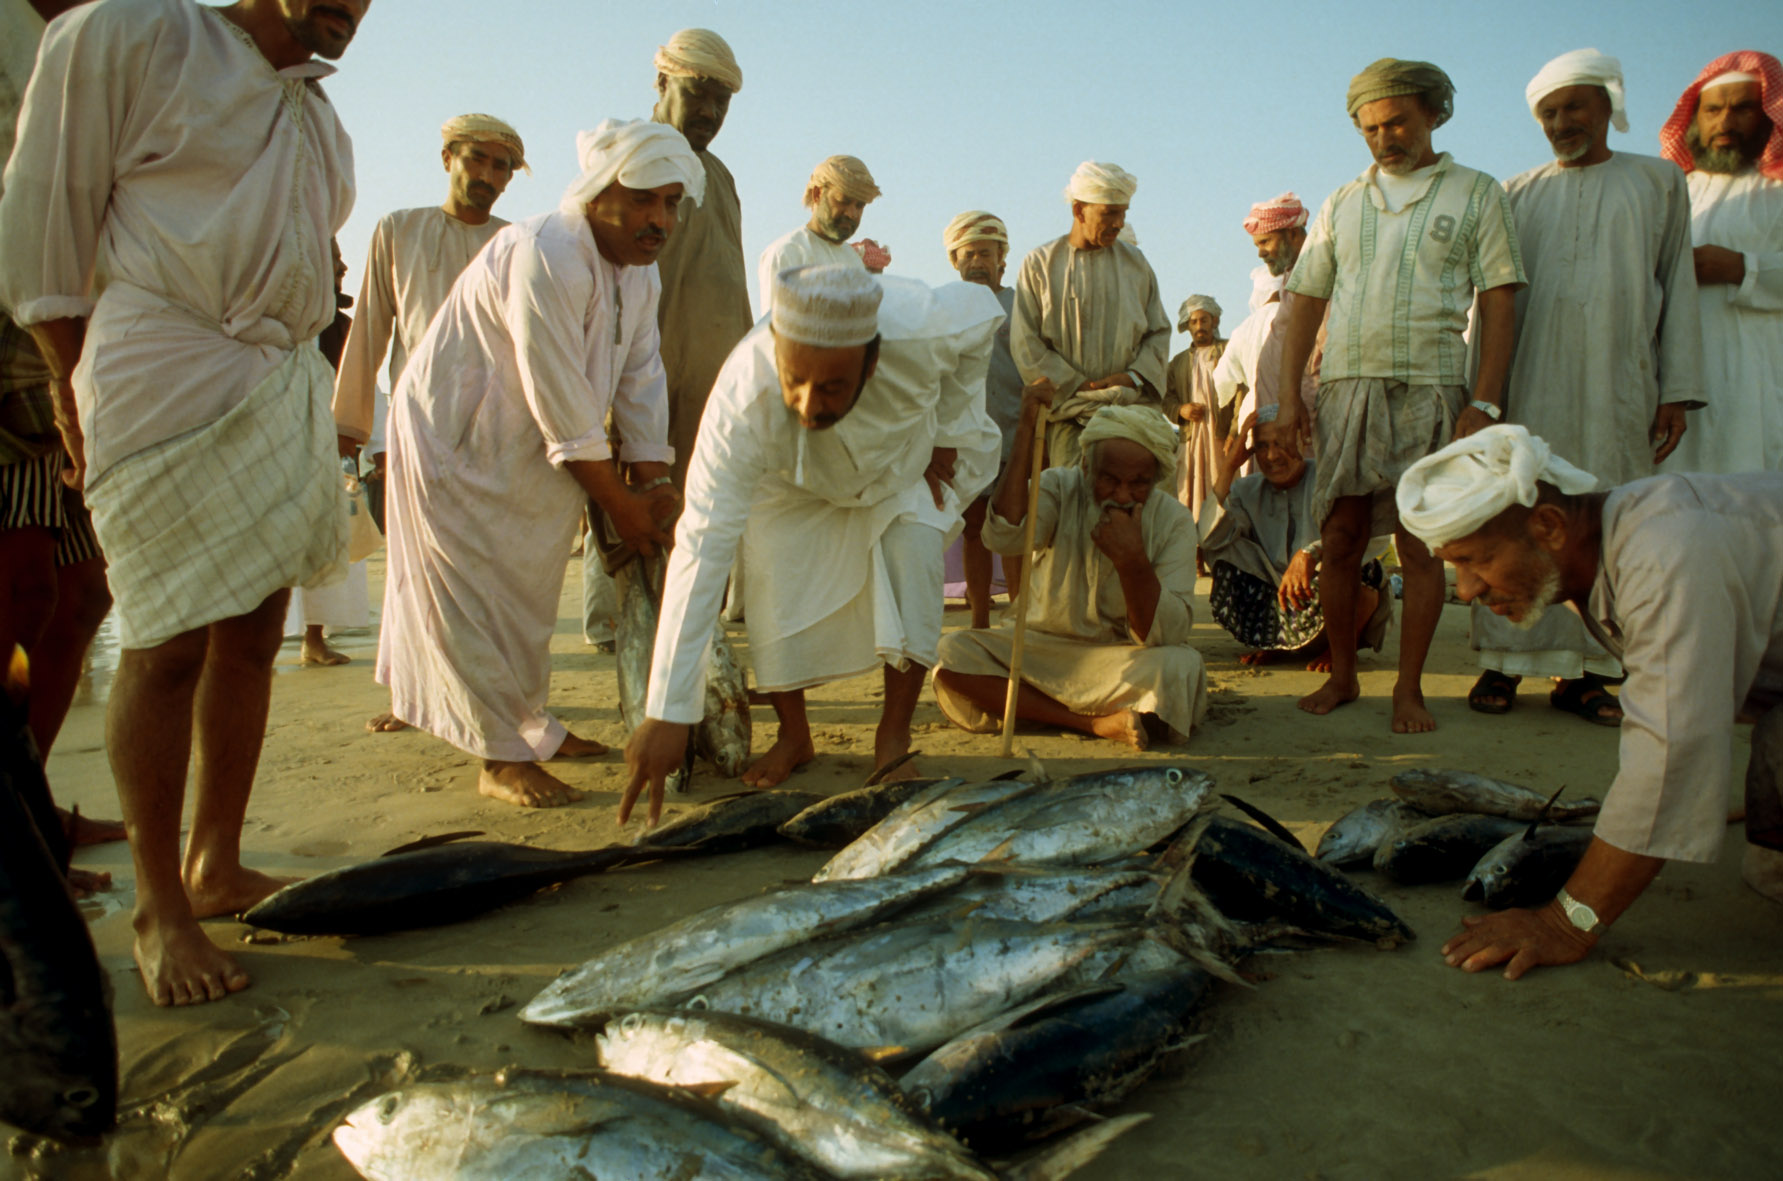 The new investment wave into aquaculture in Middle East